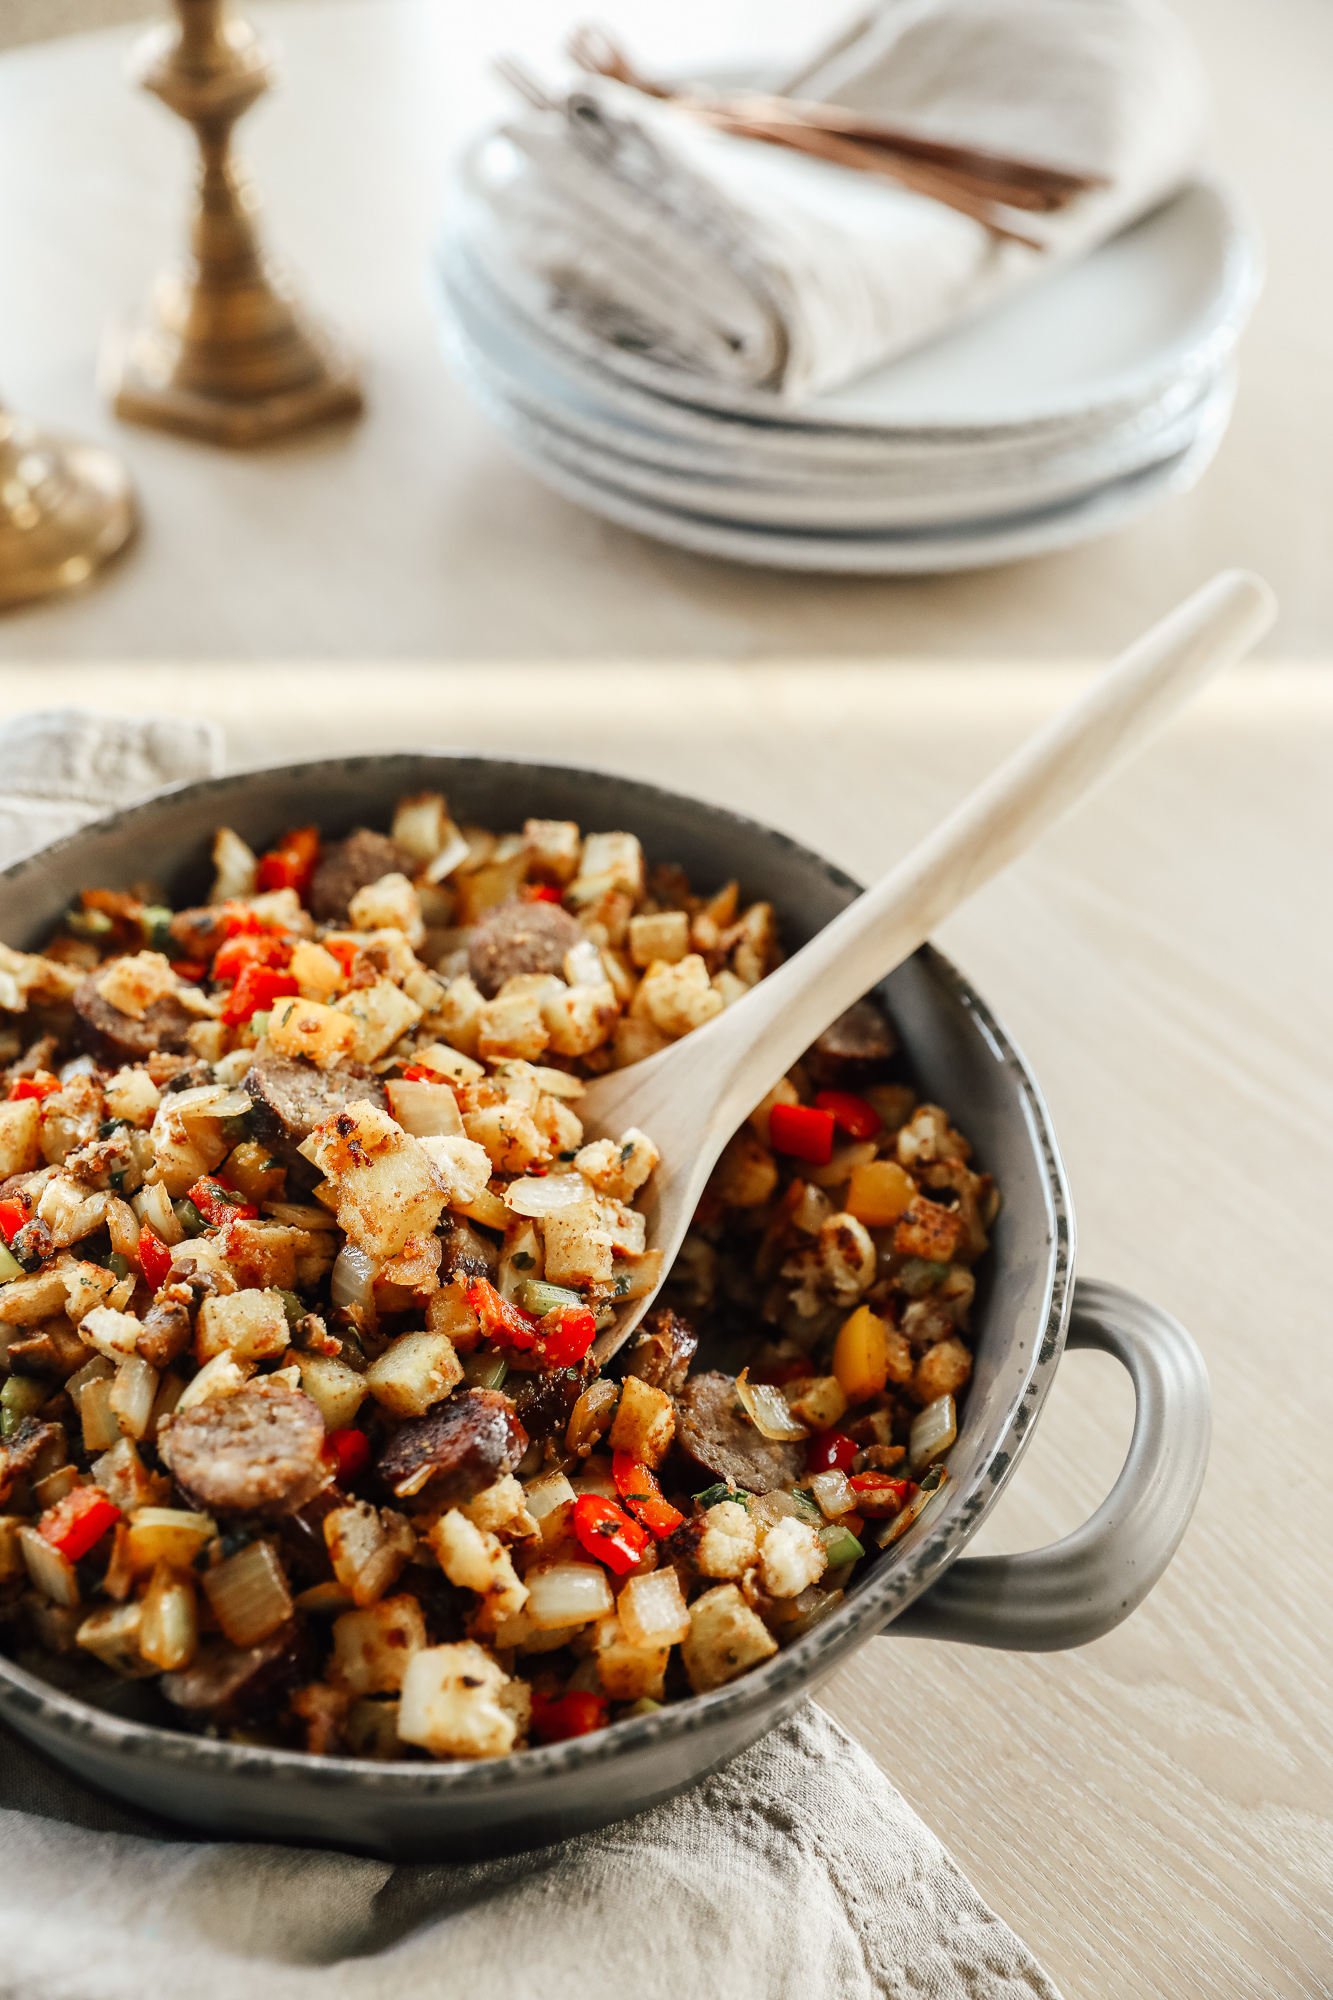 The Healthiest, Tastiest Thanksgiving Stuffing (gluten free, grain free, dairy free, egg free)